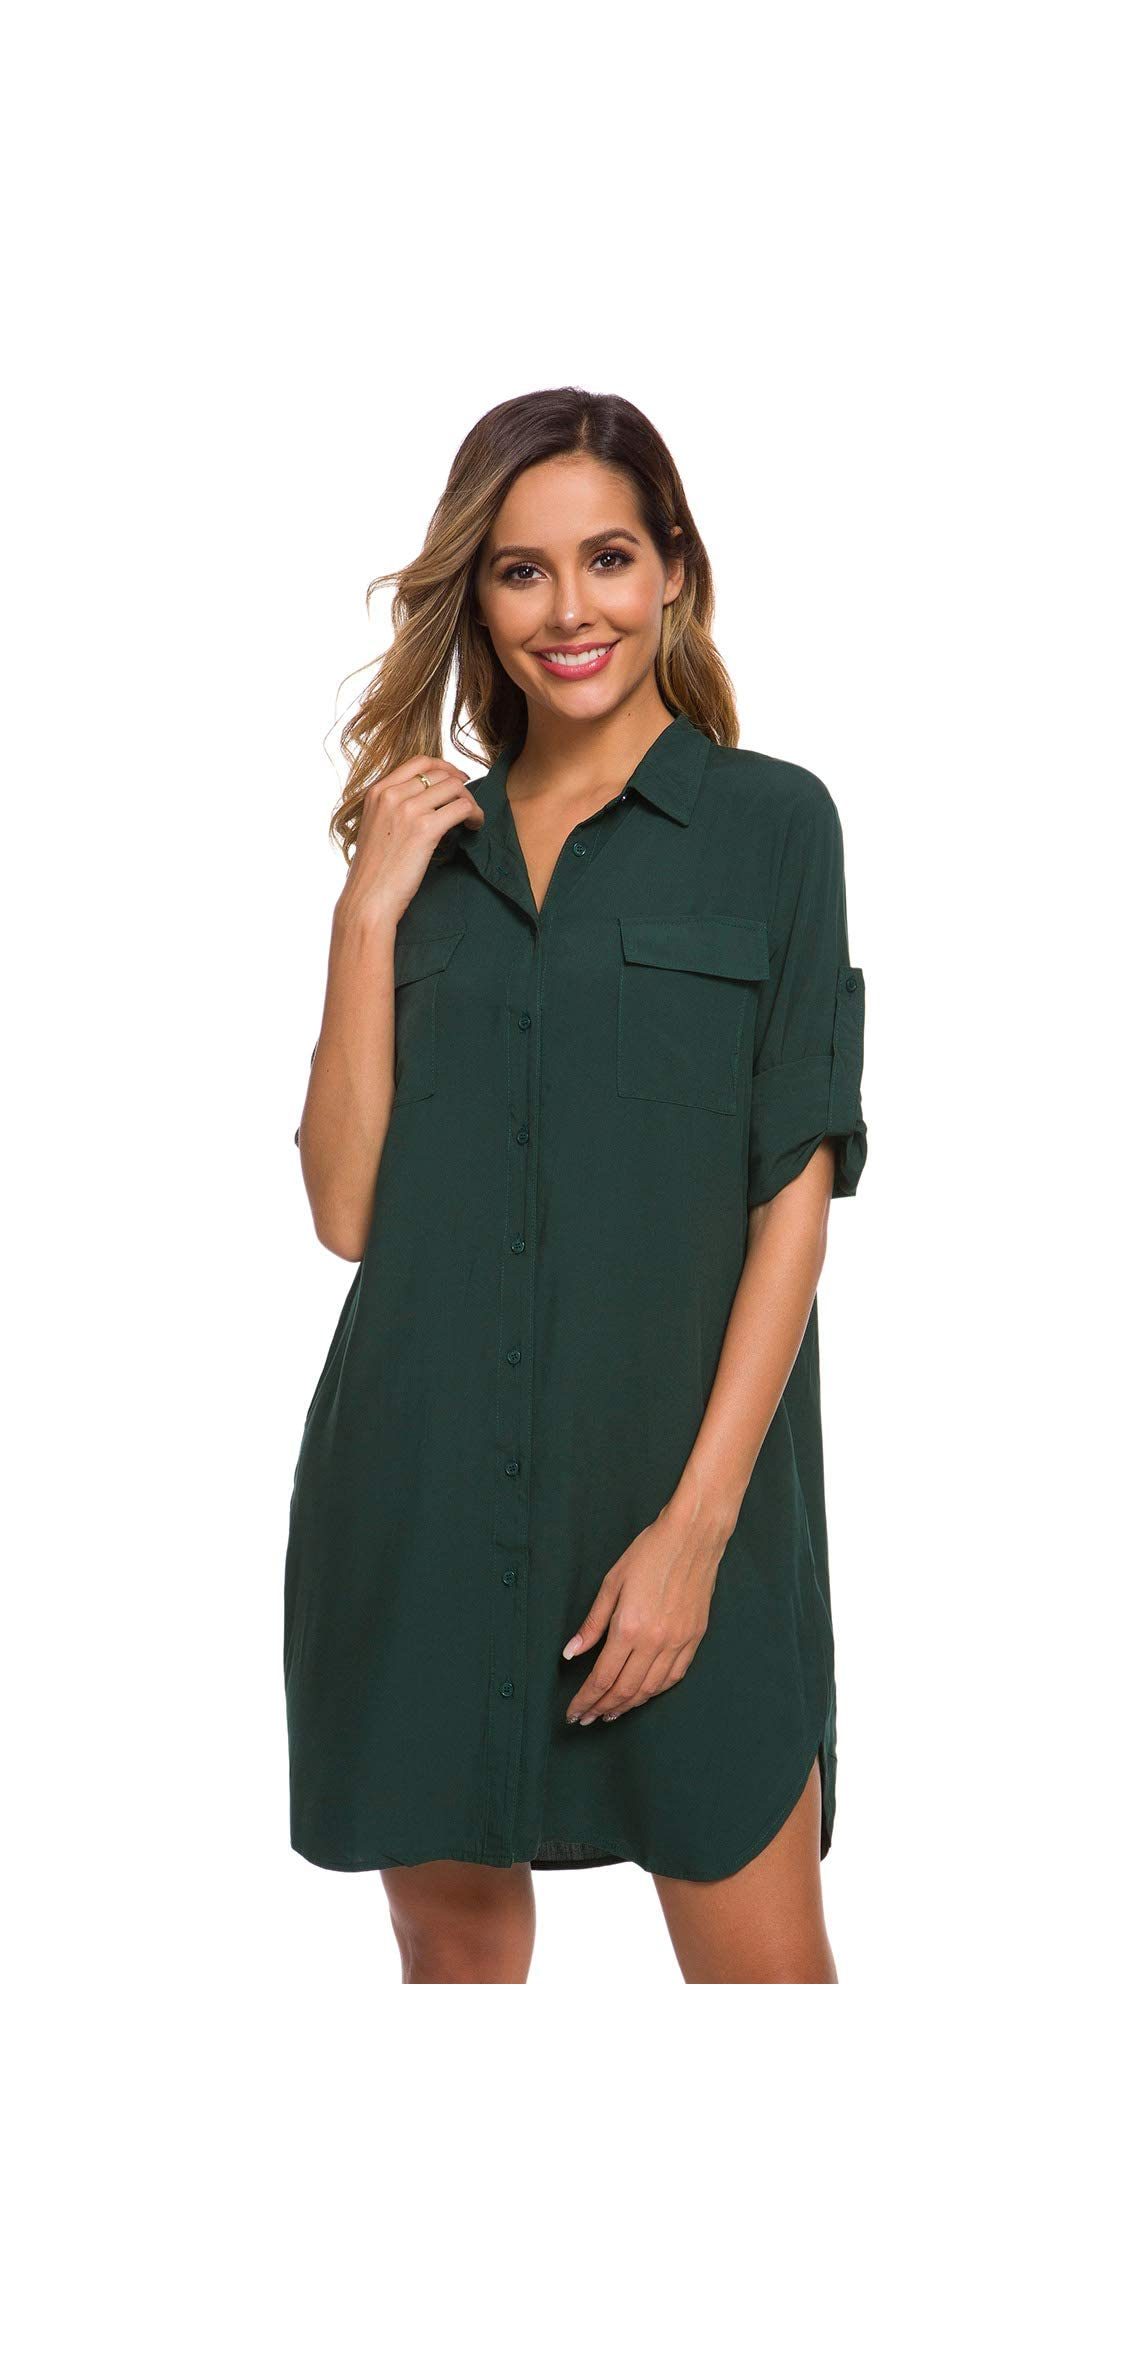 Women's Long Sleeve V Neck Button Down Shirt Dresses With